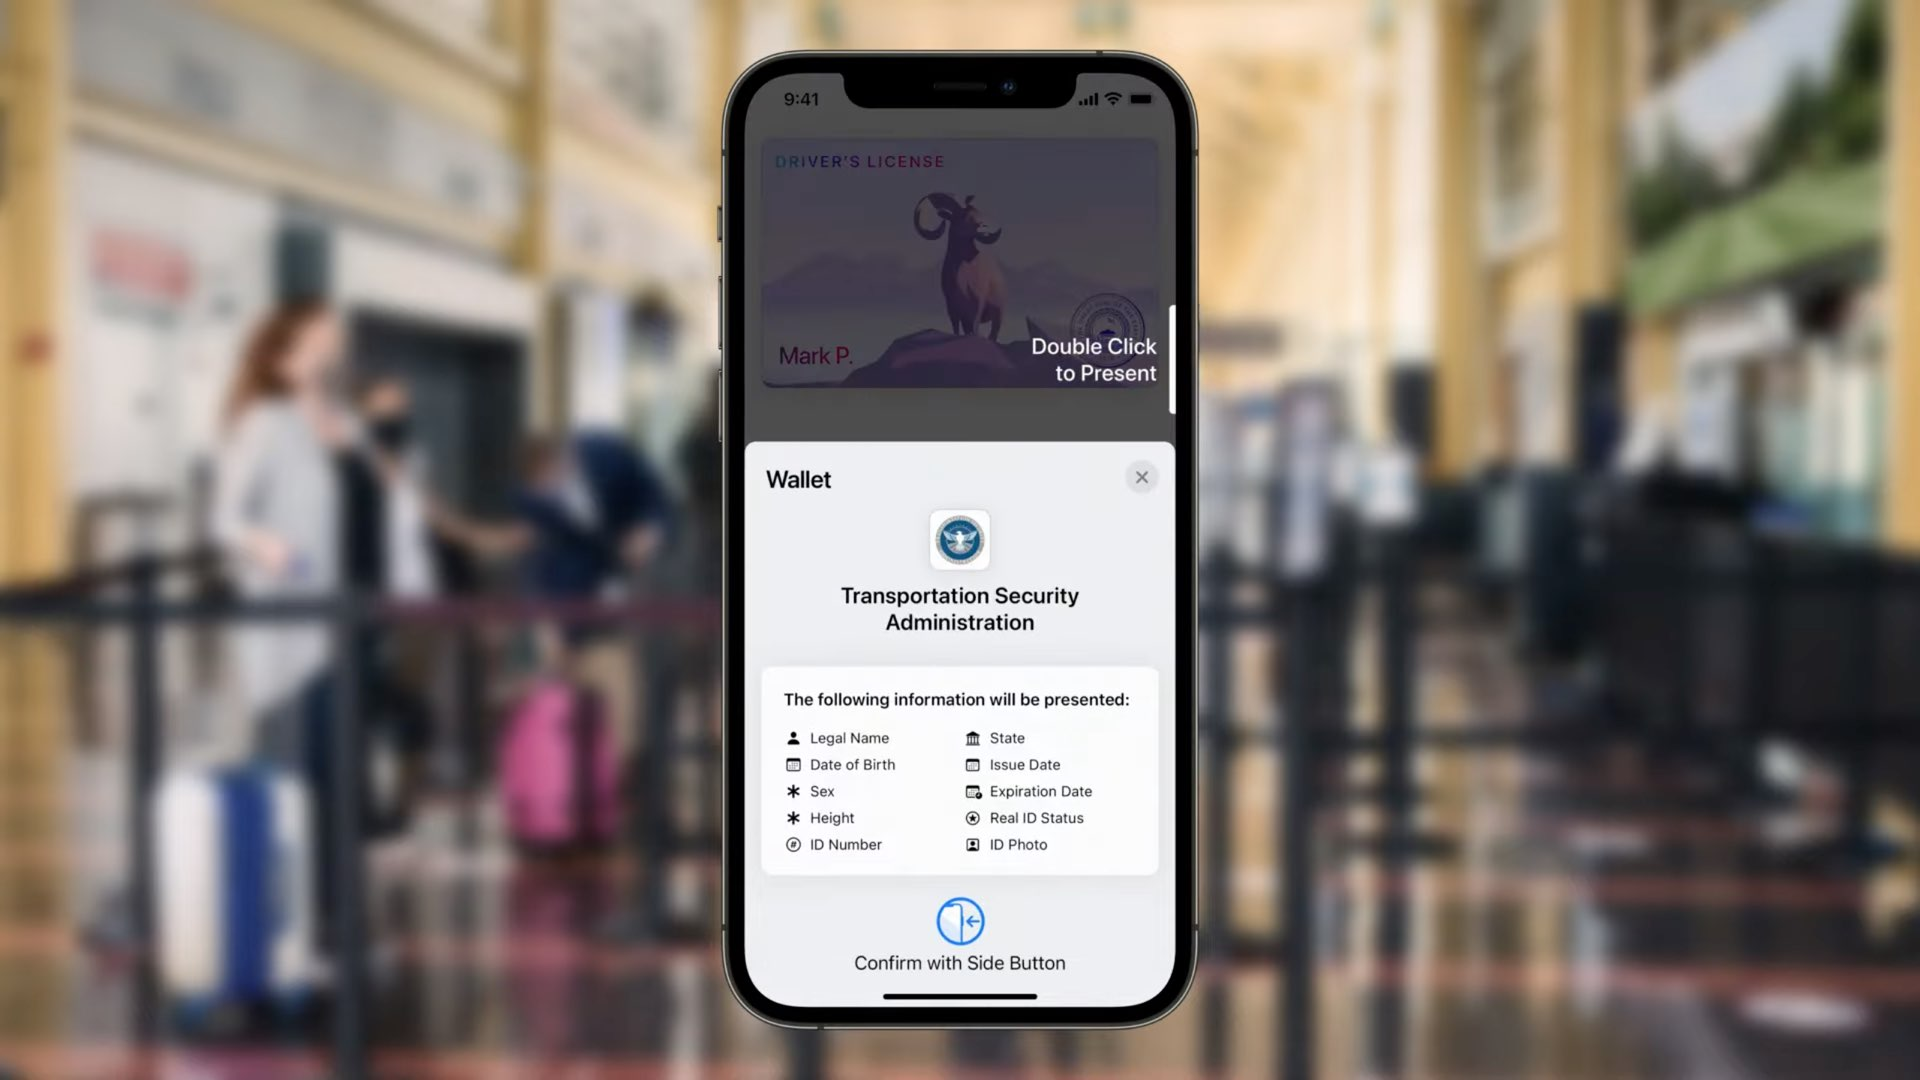 Apple's promotional image showing presenting driver's license to TSA with iOS 15 Wallet on iPhone